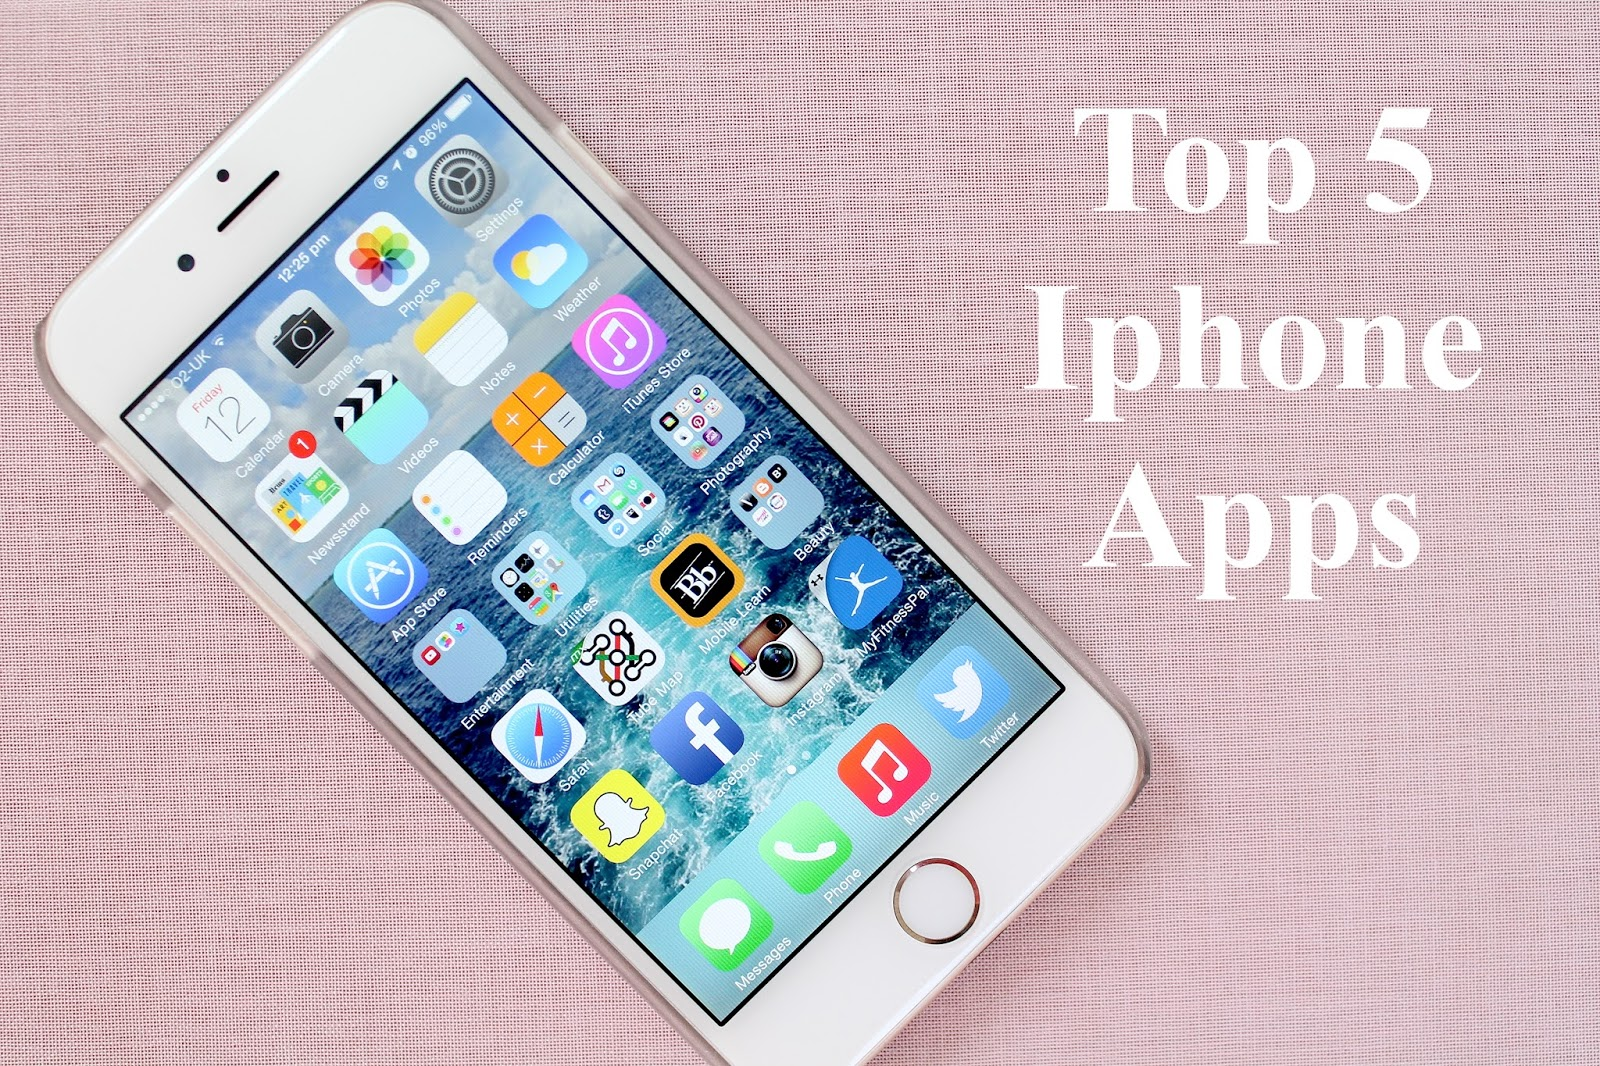 best free iphone apps top iphone apps iphone apps expensive app top 5 apps 2638